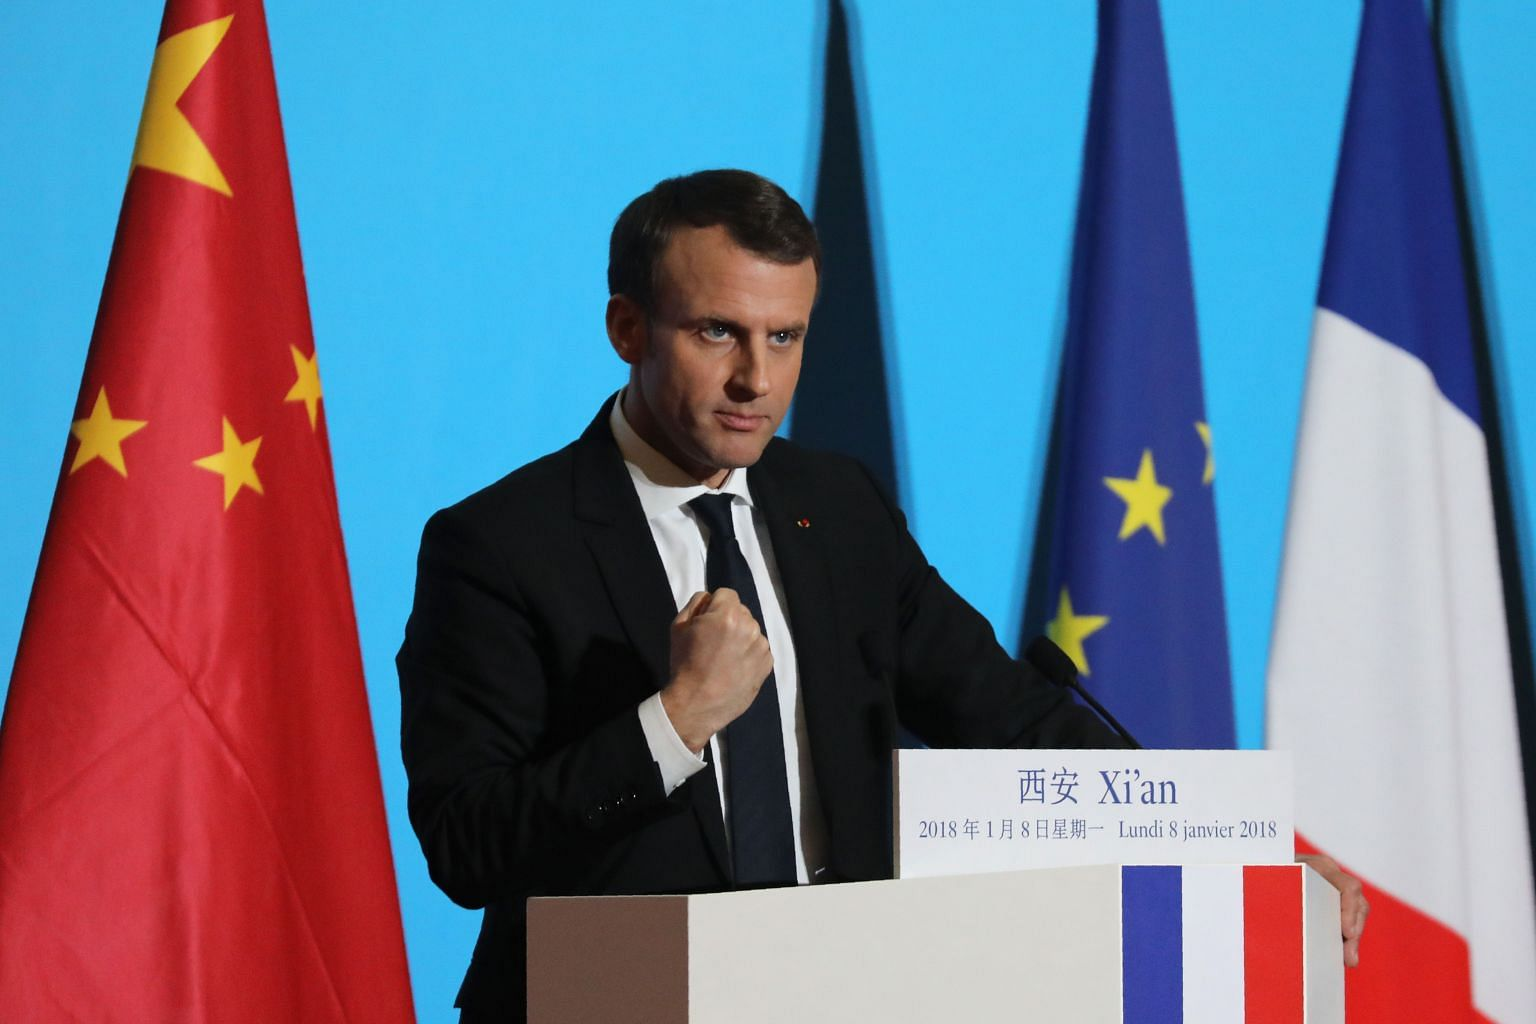 Macron Wins Chinese Fans With Mandarin Lesson East Asia News Top Stories The Straits Times